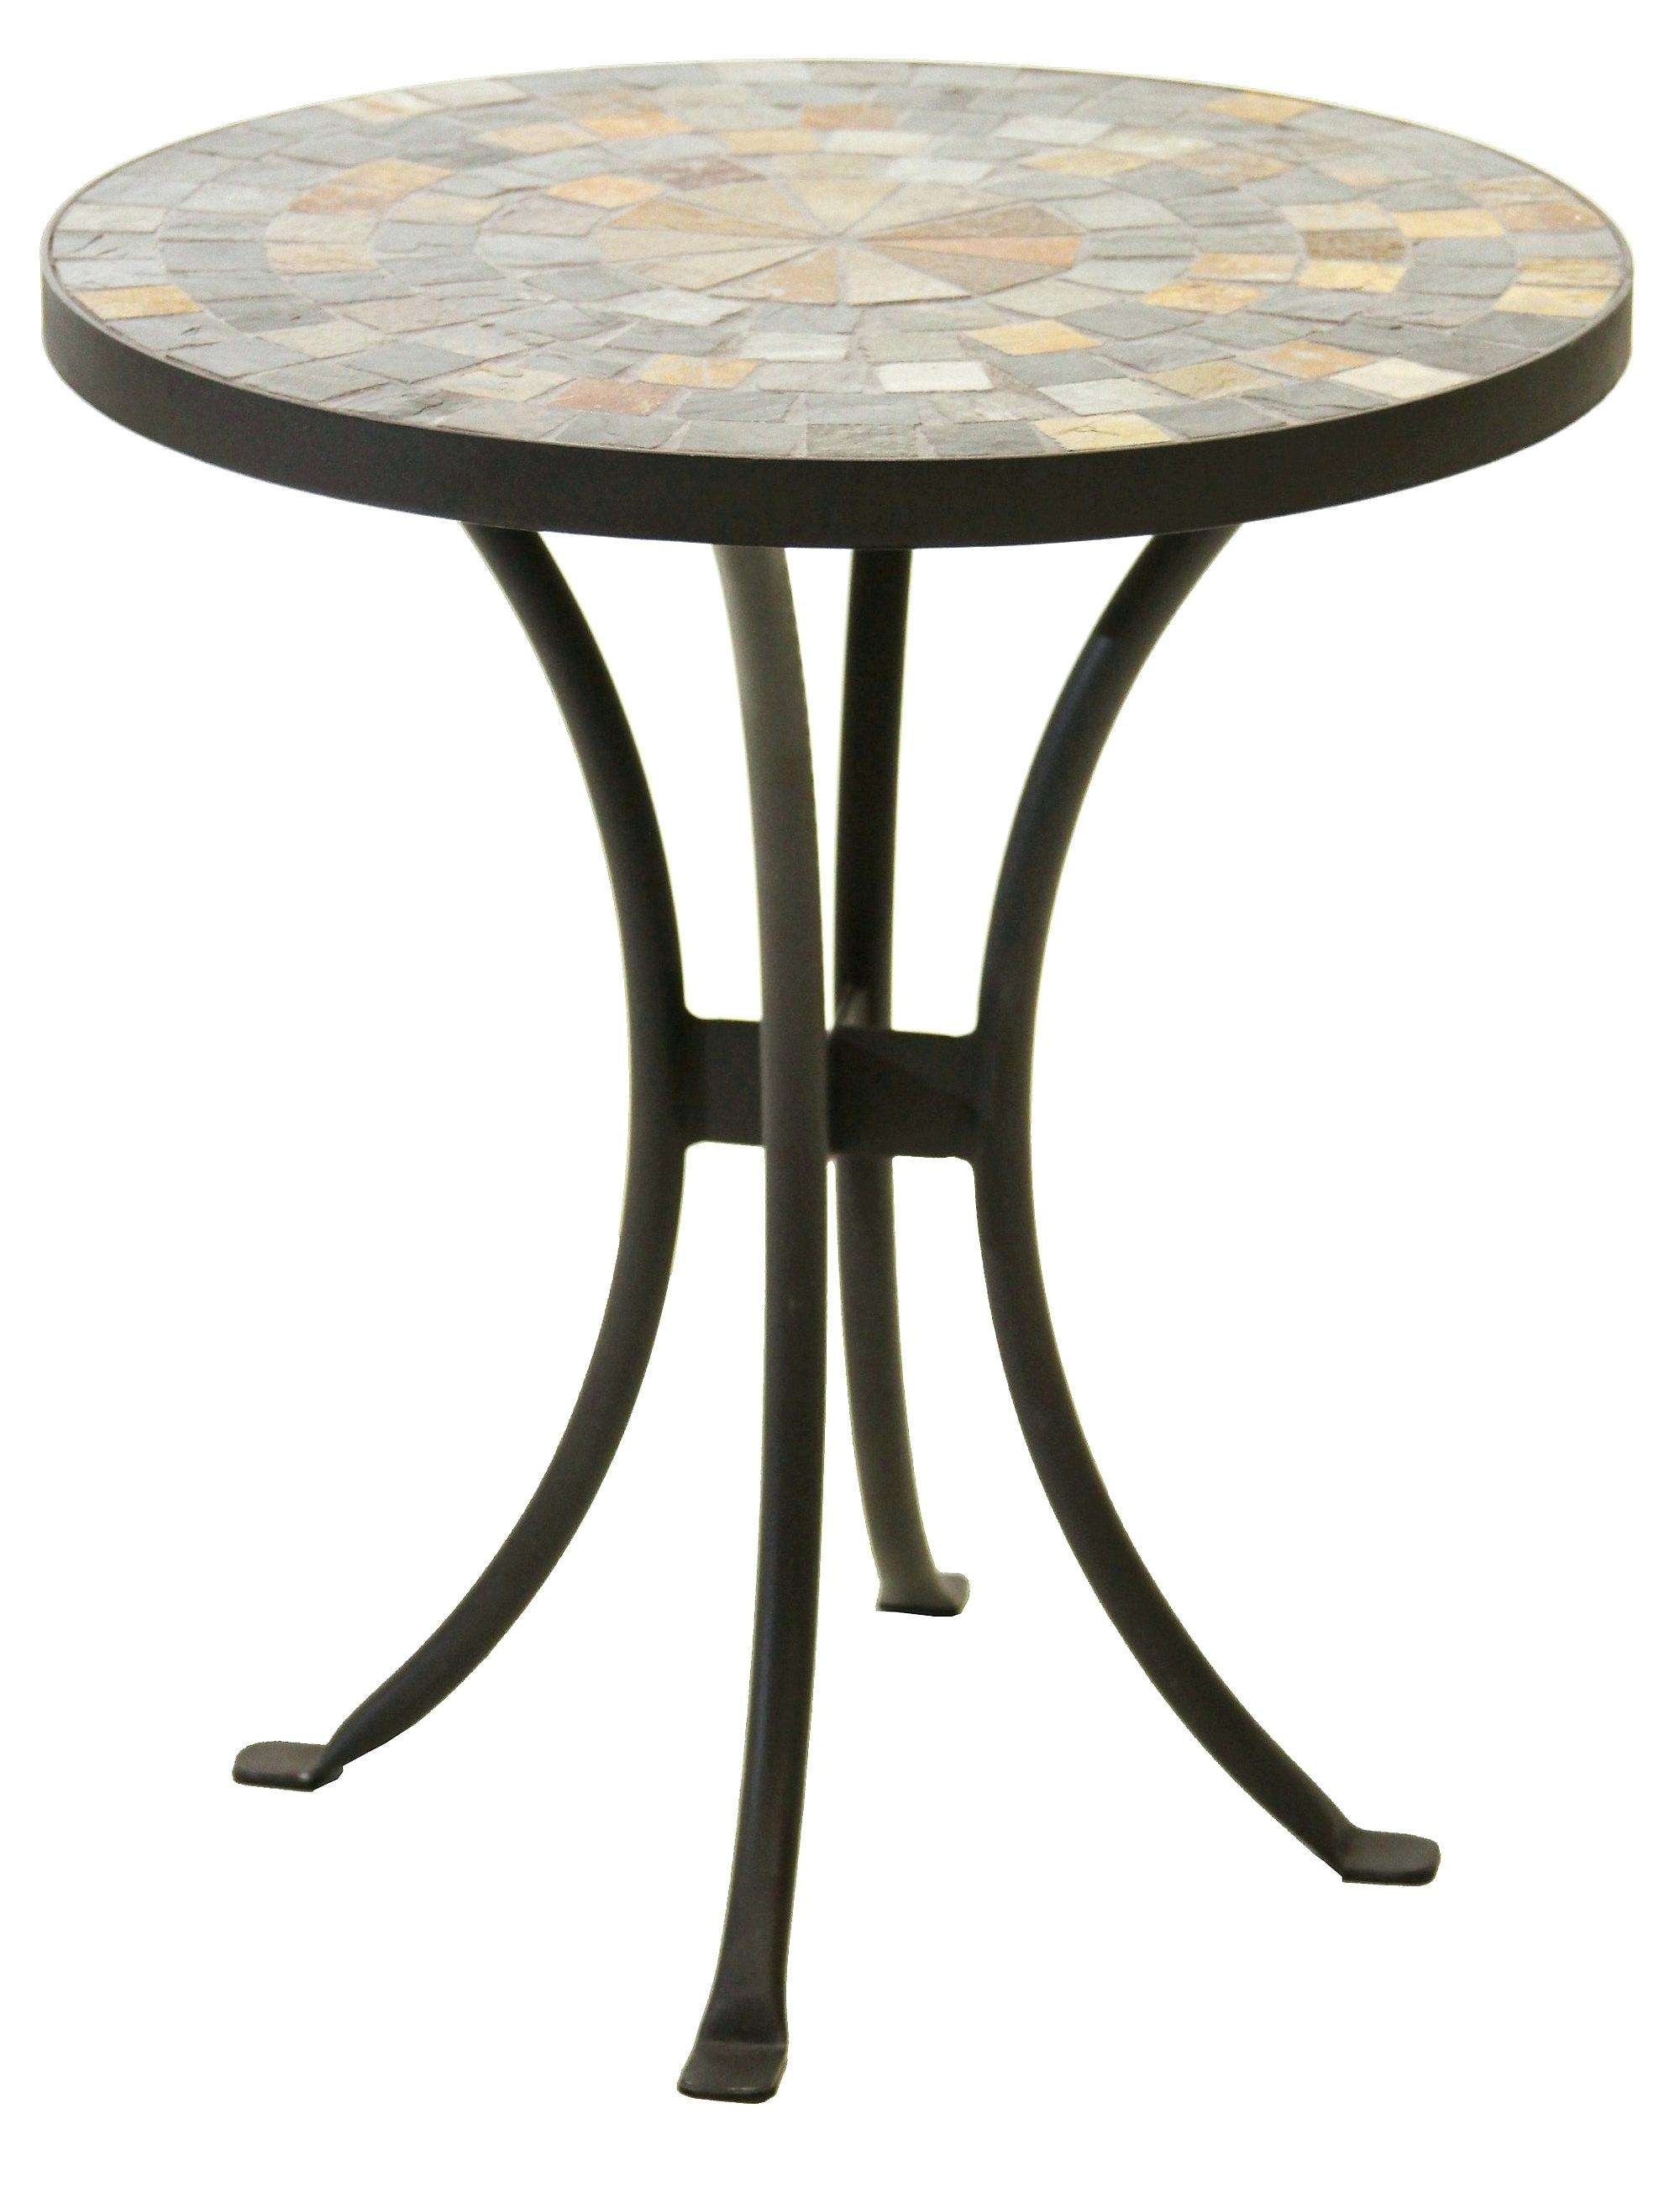 mosaic tile outdoor table elegant bistro tables patio fresh accent stock resin side used drum stool coffee centerpiece orange chair room essentials wine glass cabinet black